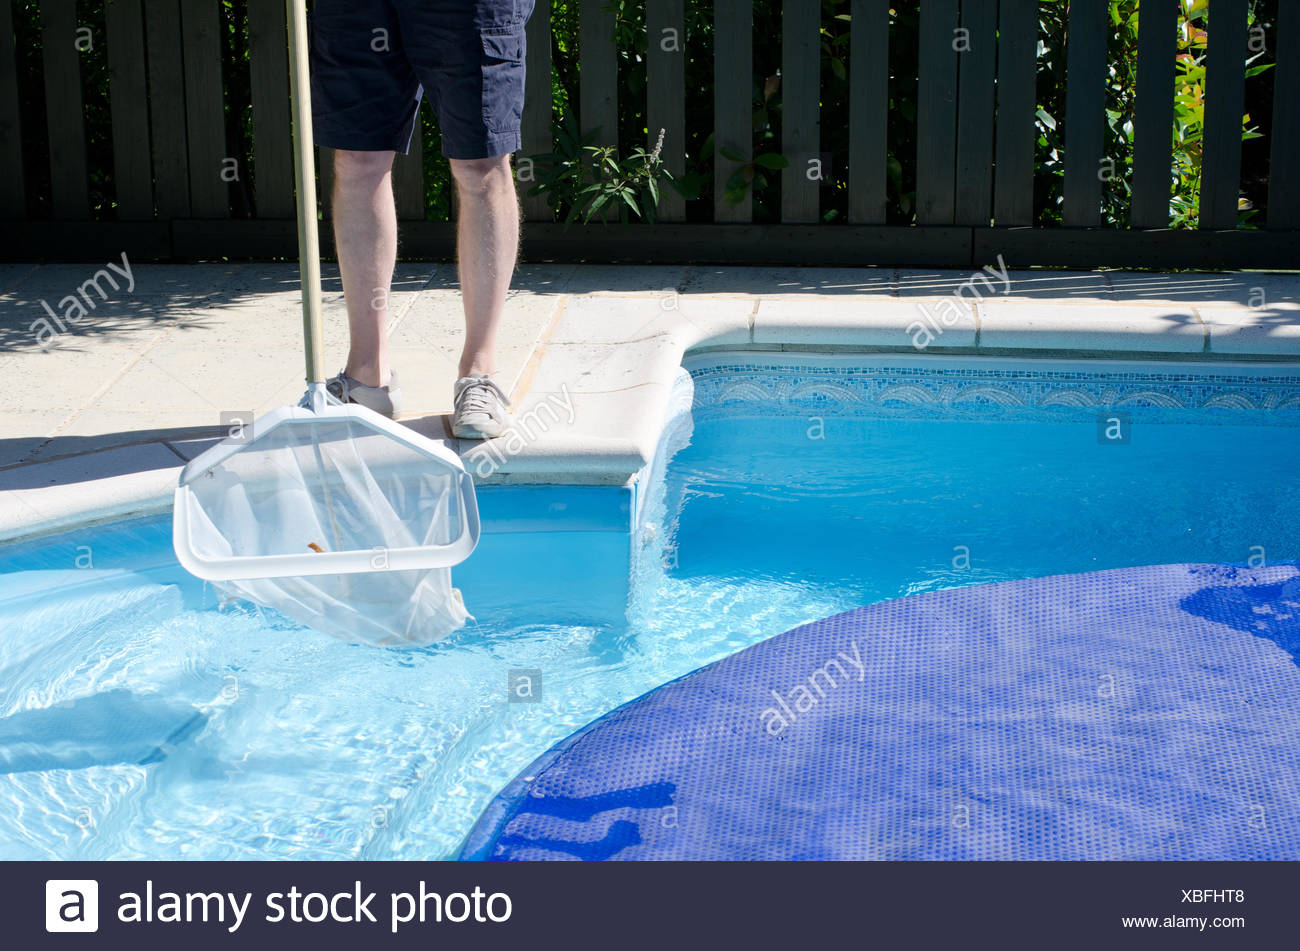 Pool Ecken Reinigen Pool Cleaner Cleaning Net Swimming Stockfotos Pool Cleaner